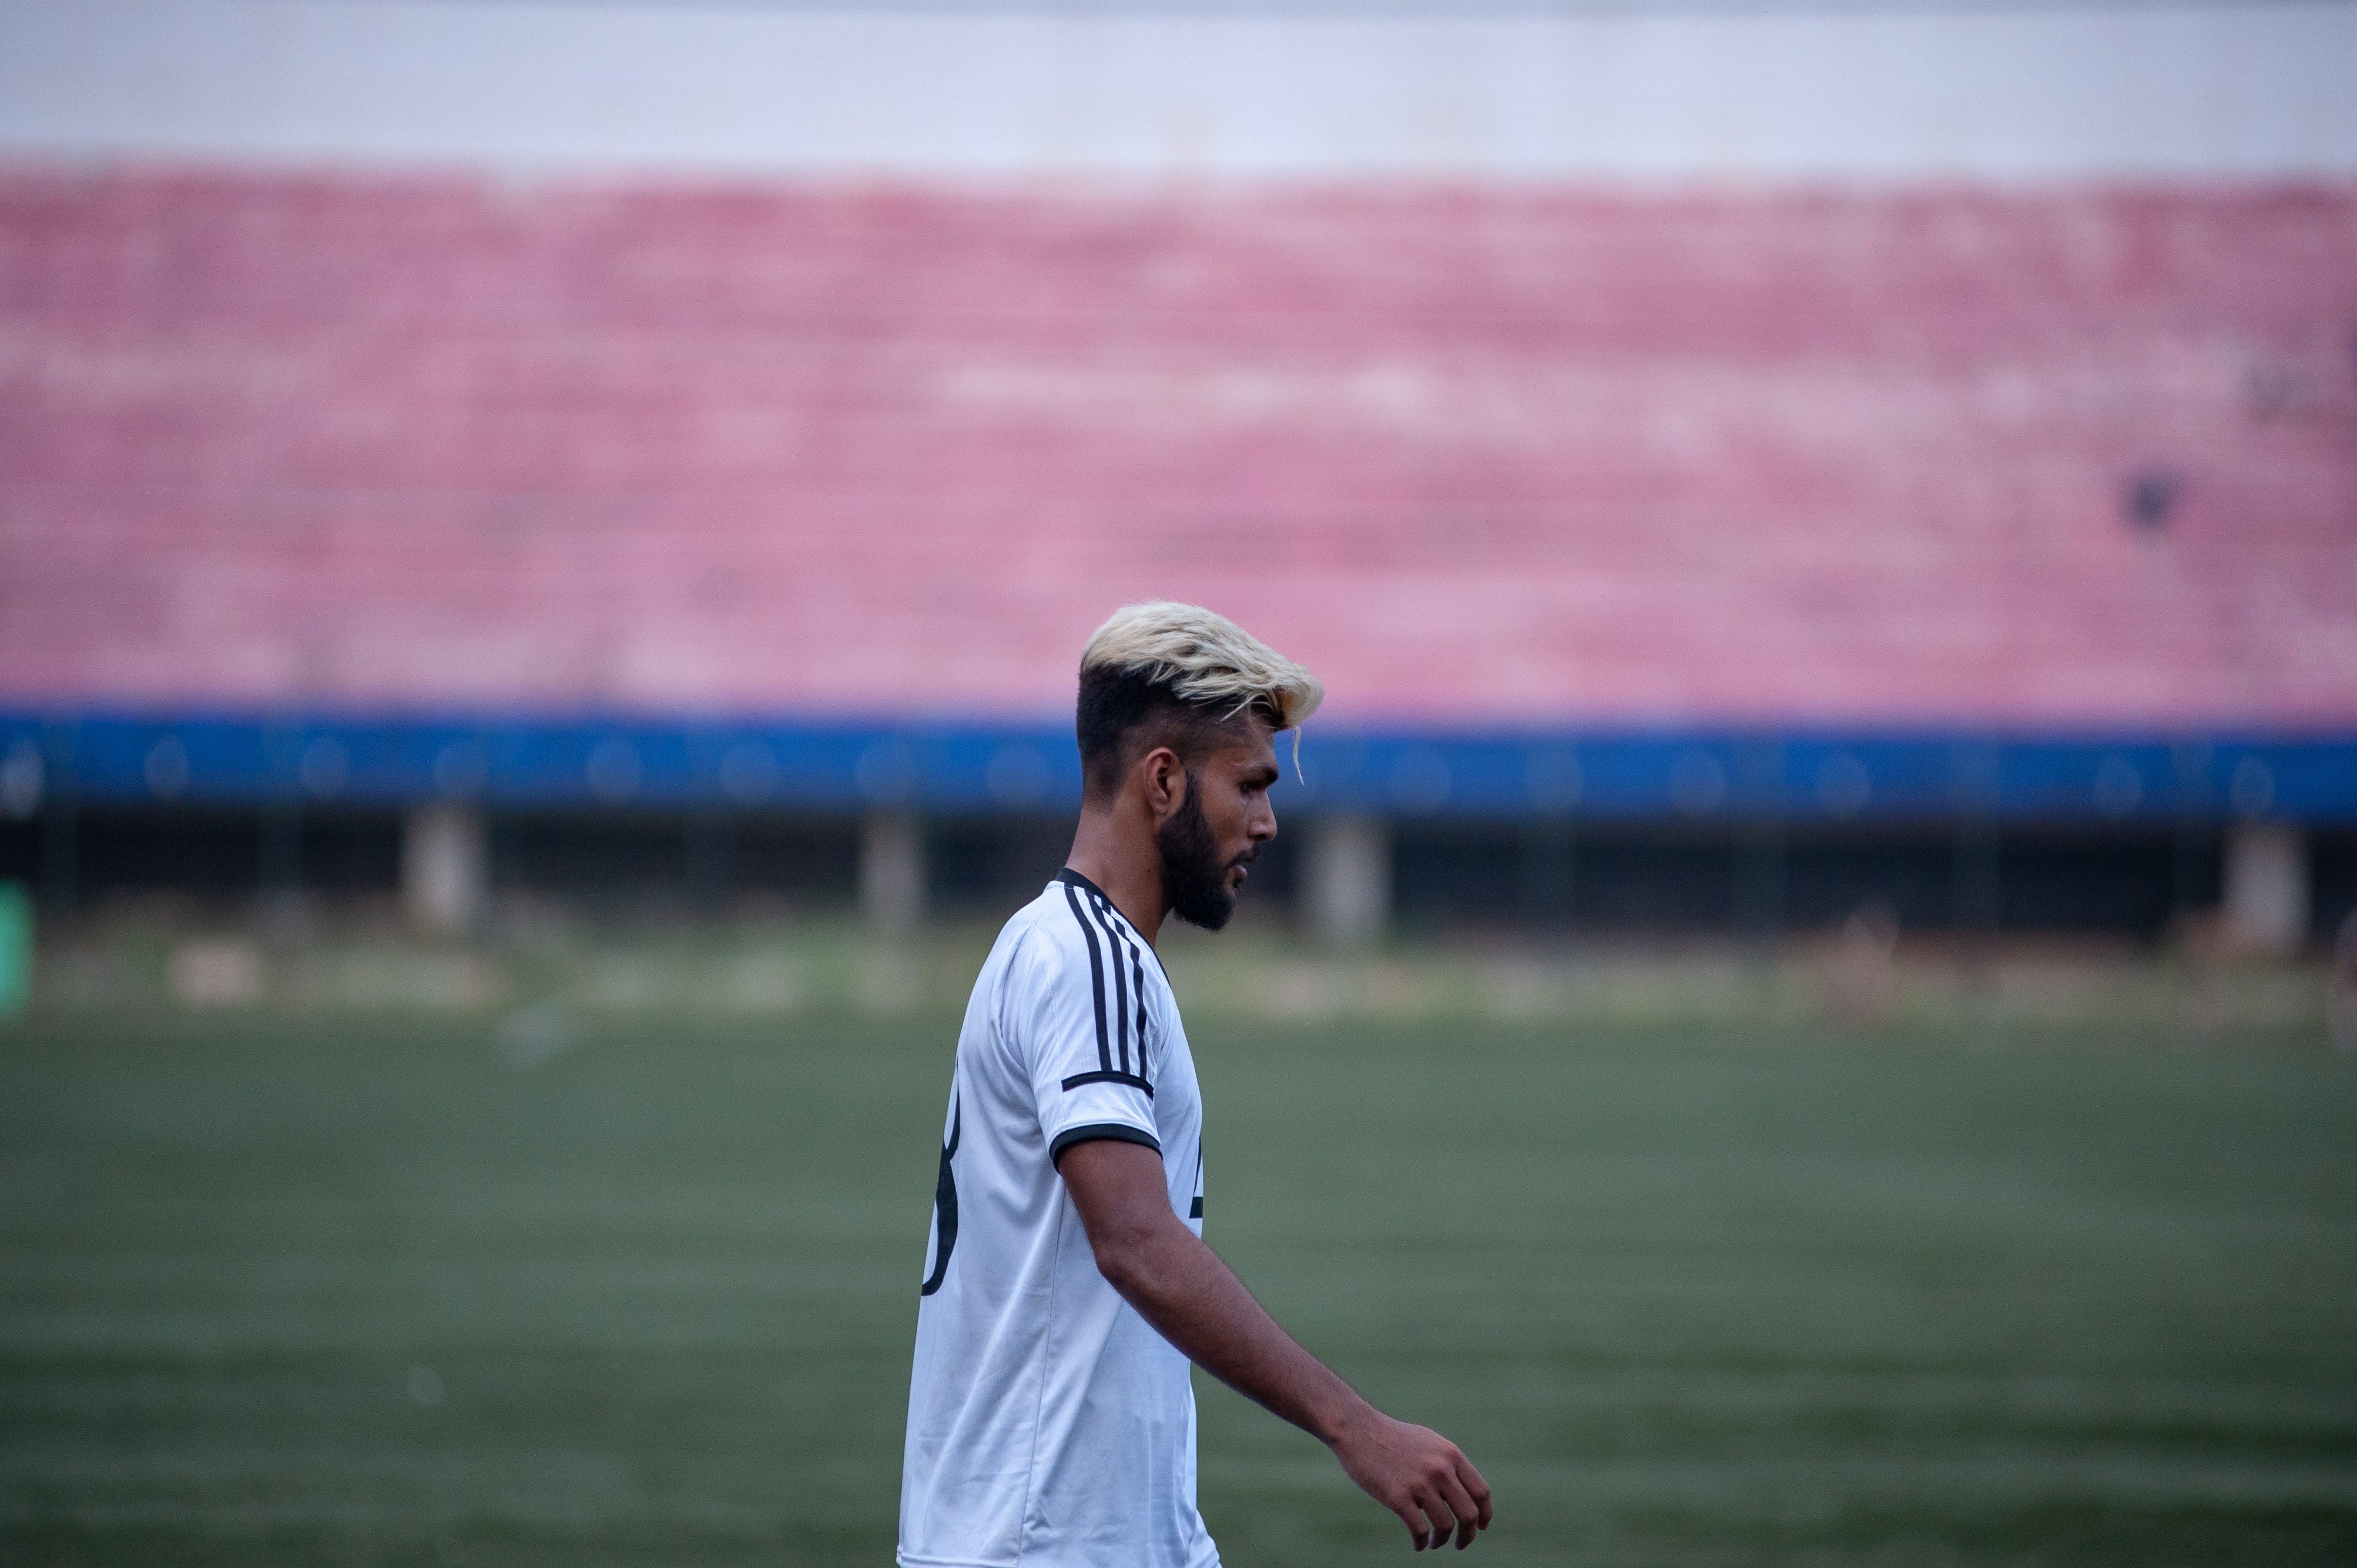 A Mohammedan Sporting players takes his position on the field at the start of the second half.